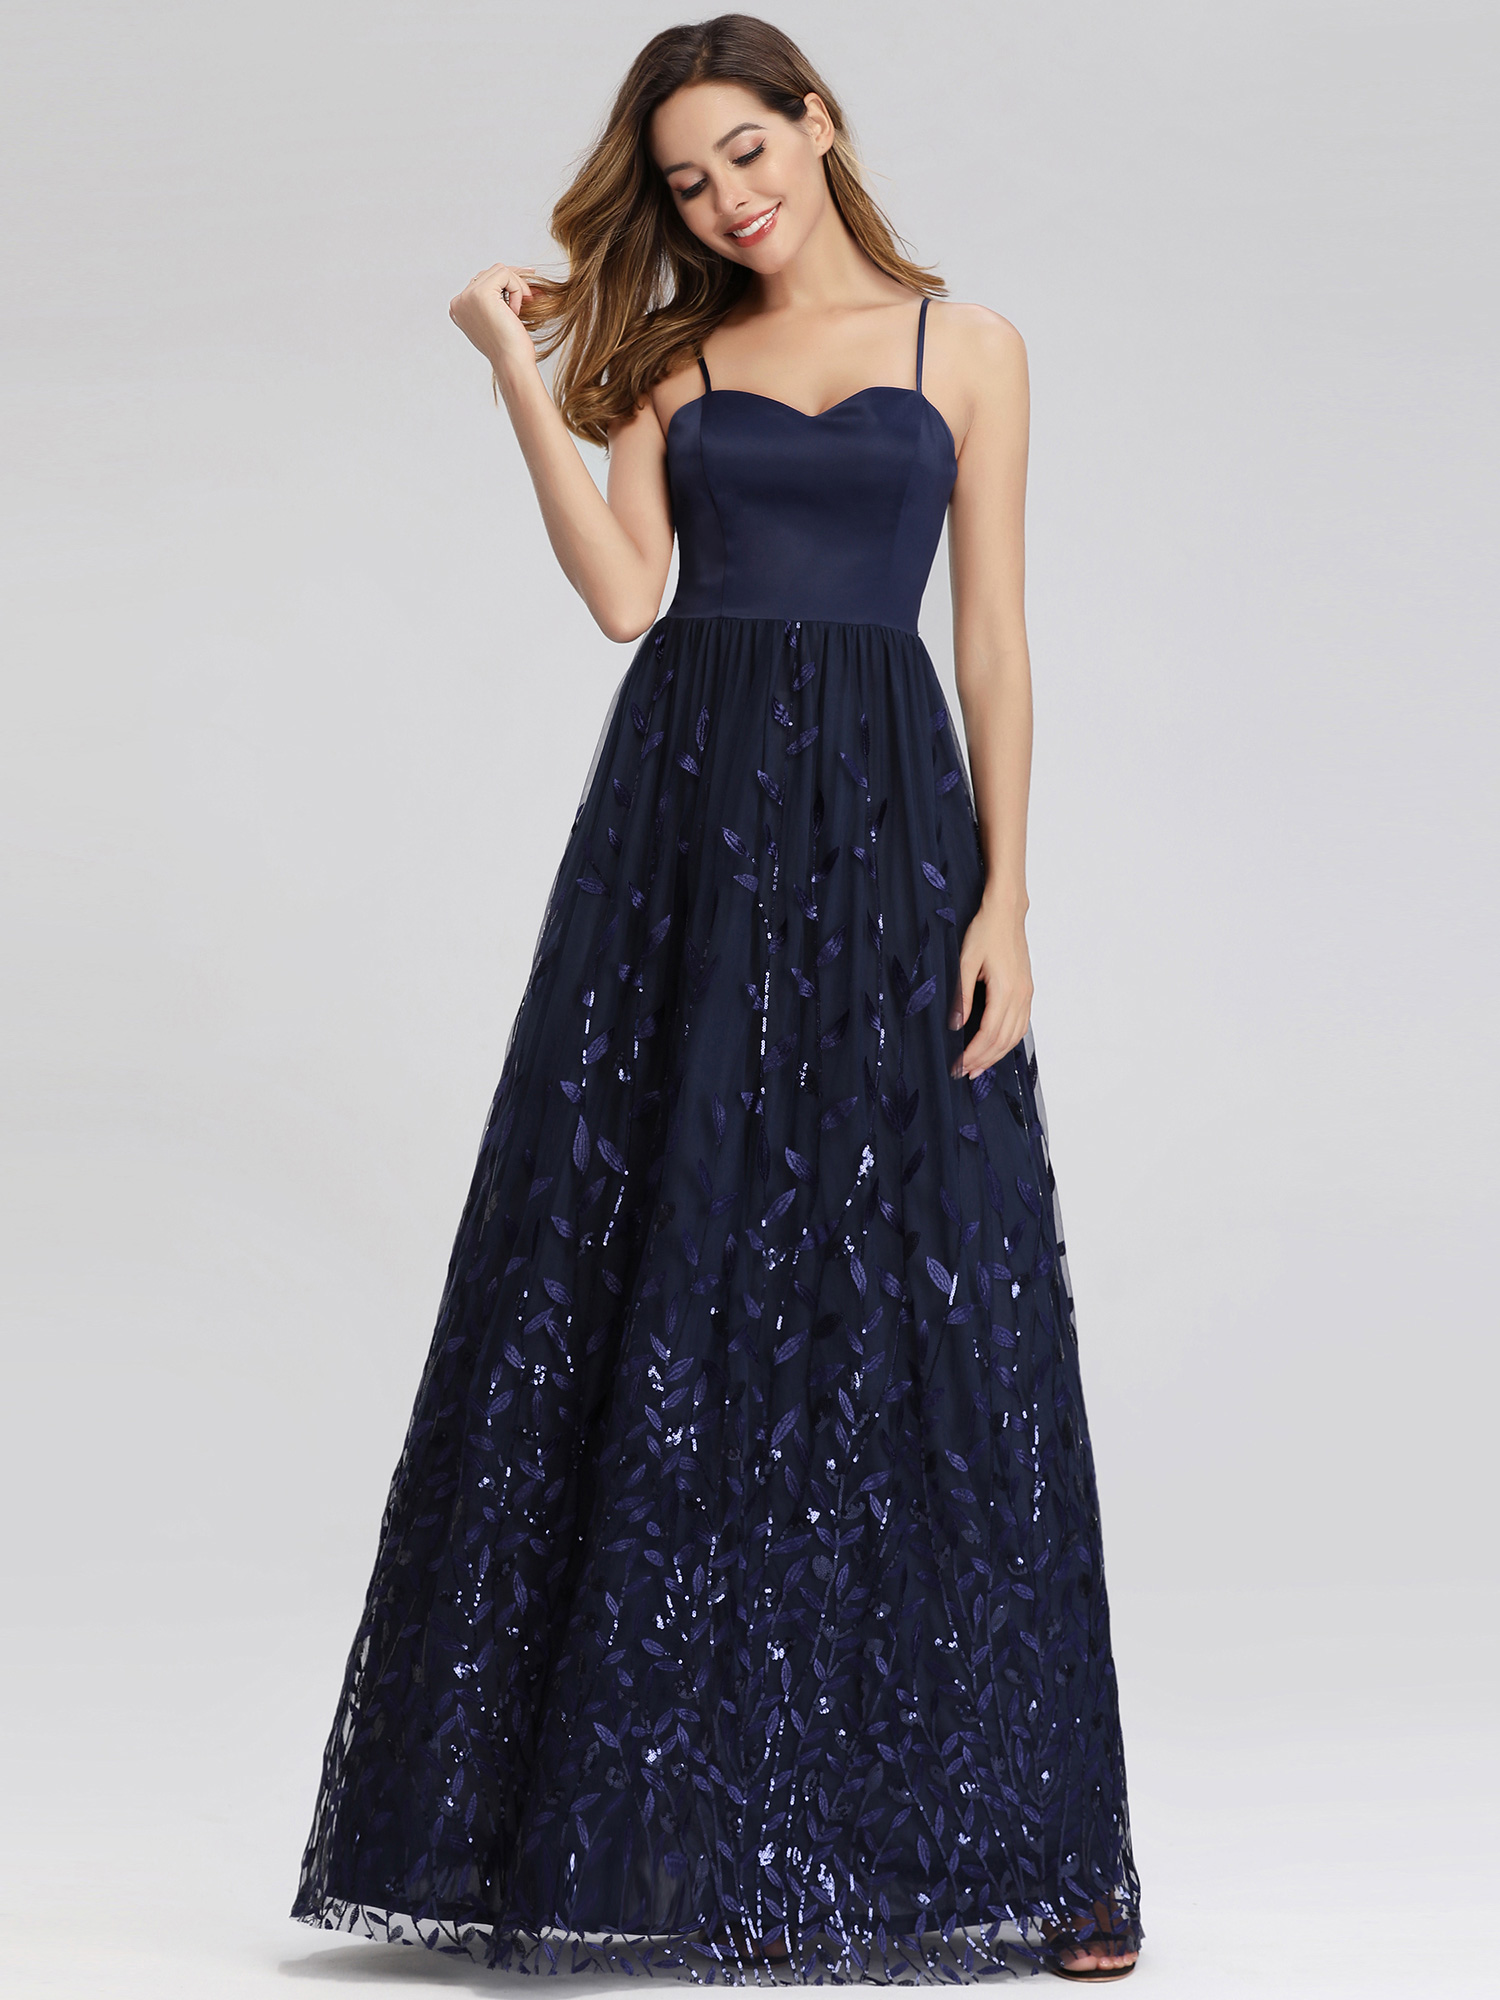 Ever-pretty-Women-A-line-Formal-Cocktail-Party-Dresses-Homecoming-Evening-Proms thumbnail 7